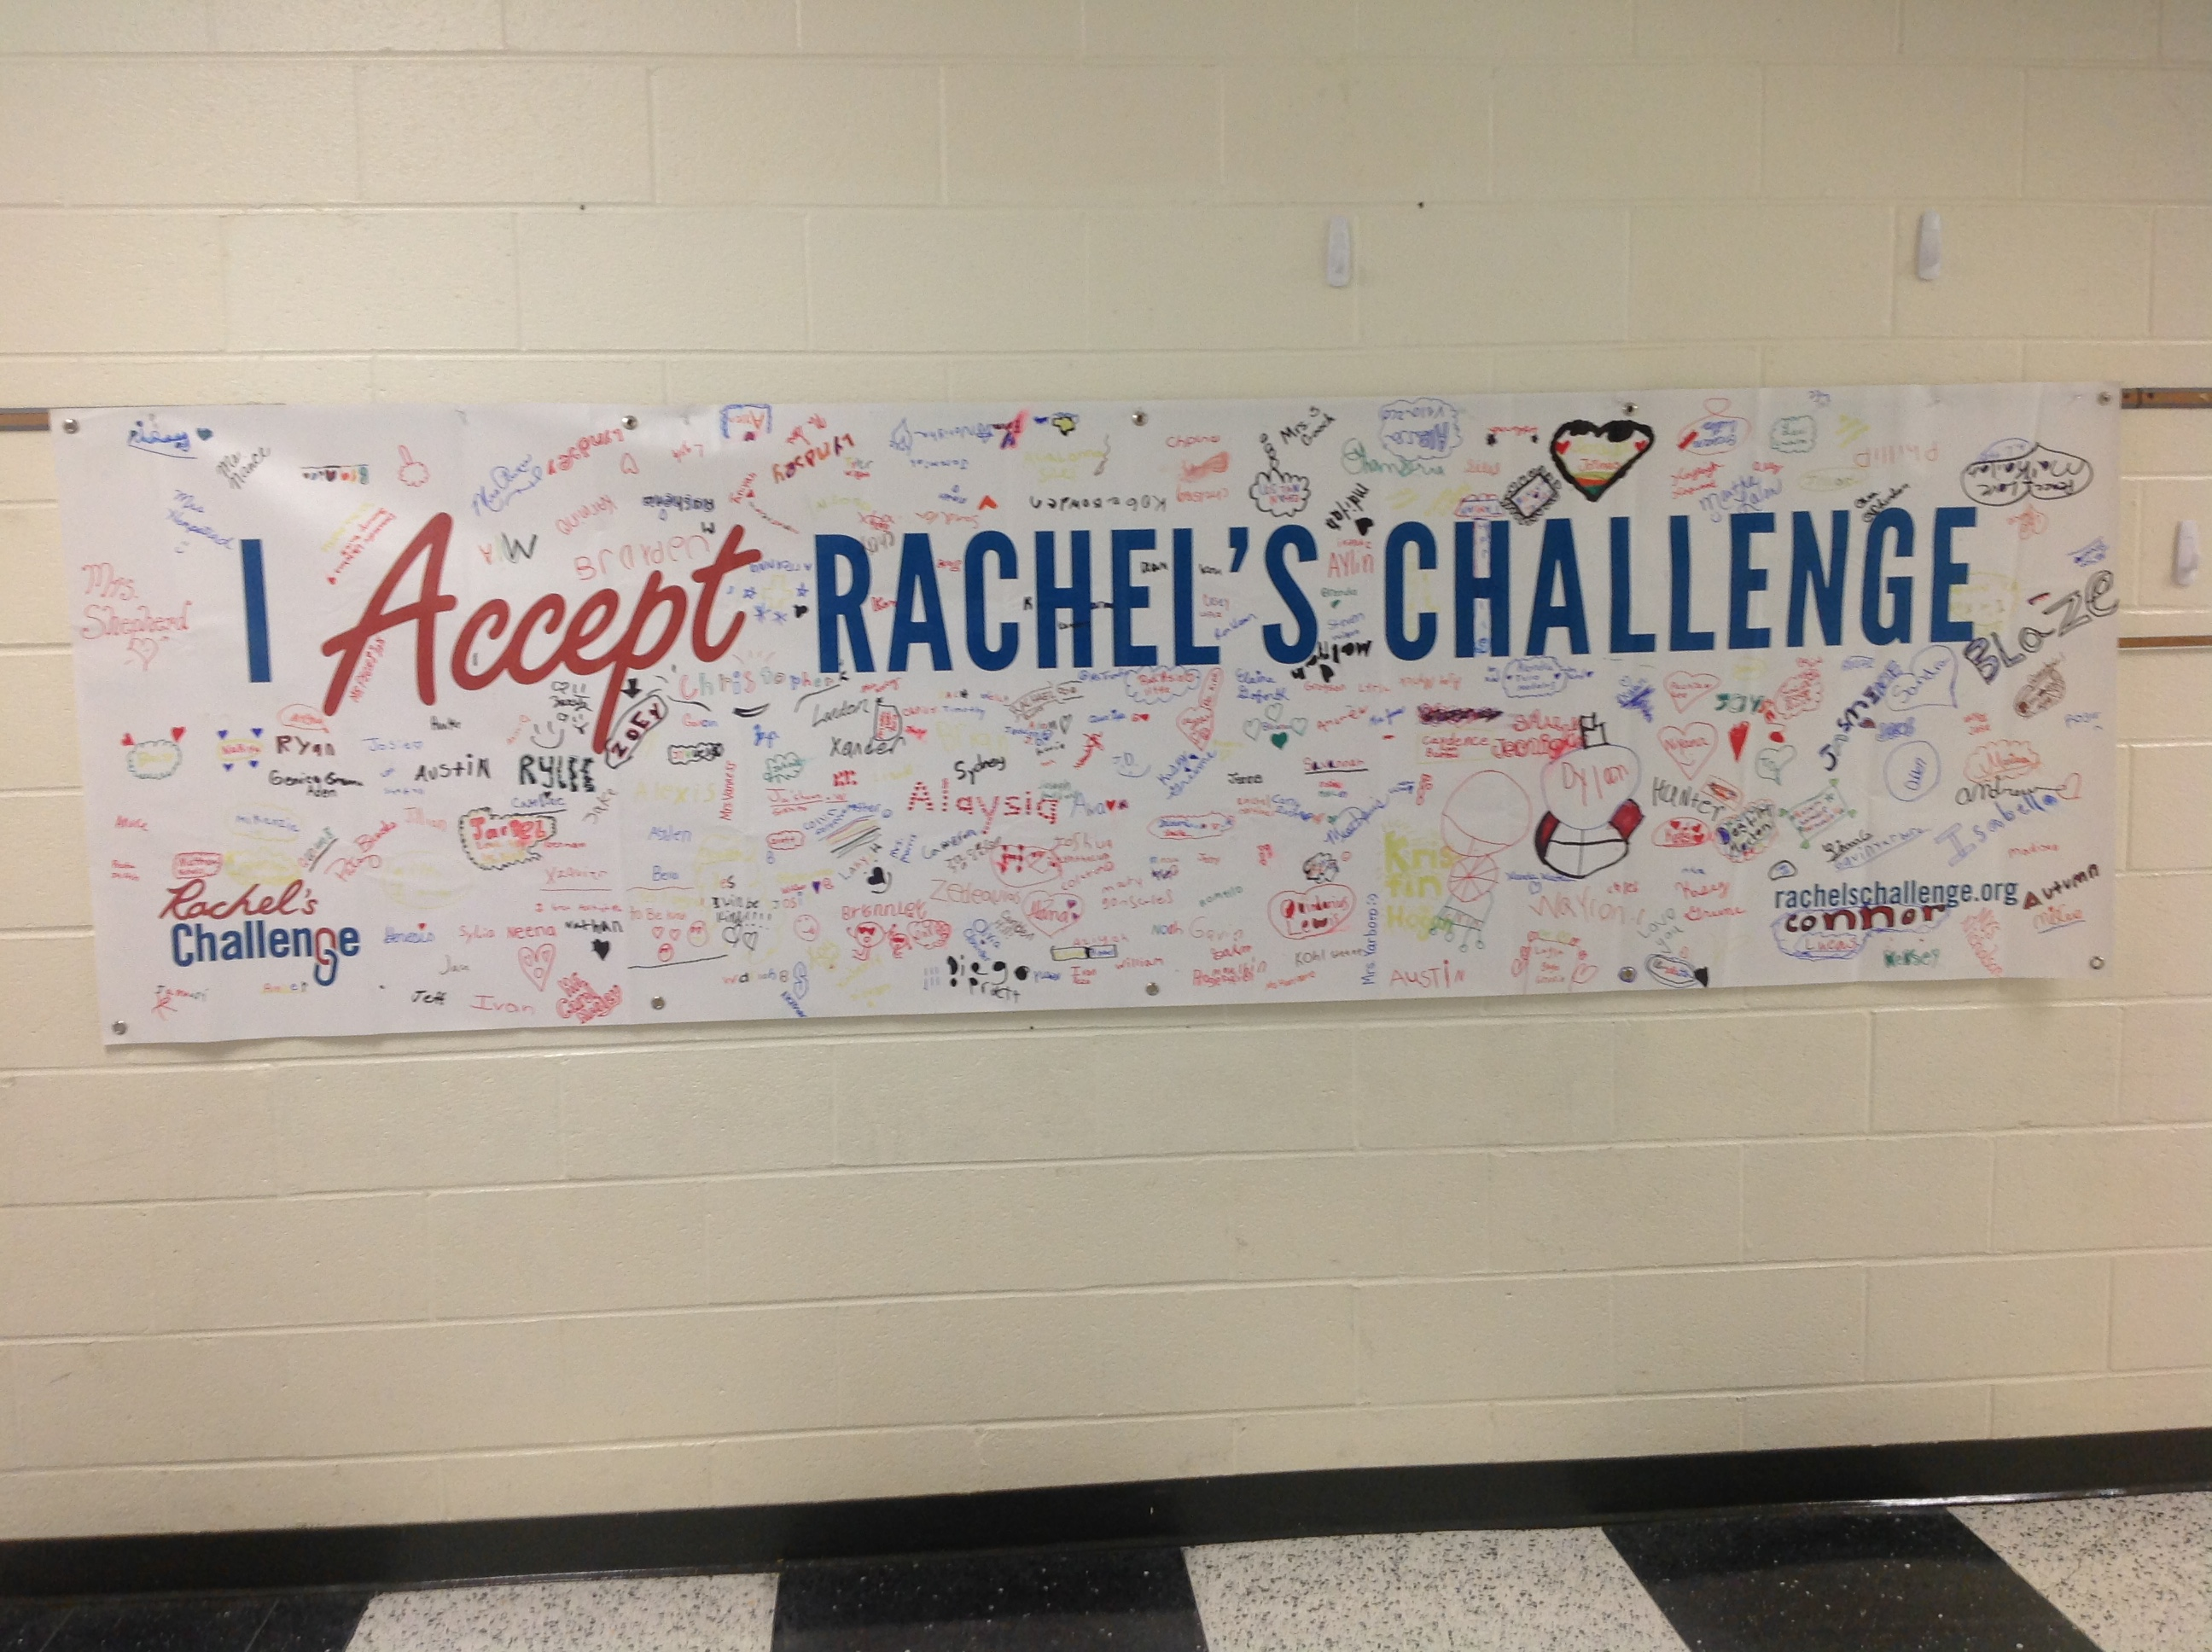 All the students have signed the banner to accept Rachel's Challenge at Page Street Elementary.